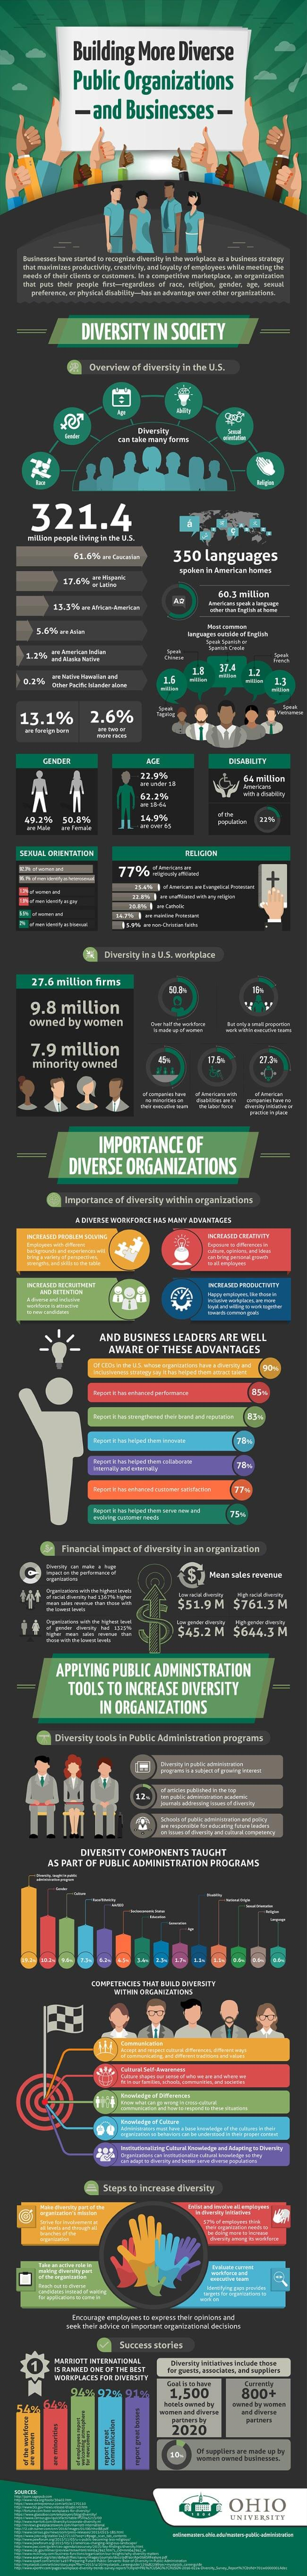 Image titled building more diverse public organizations and businesses